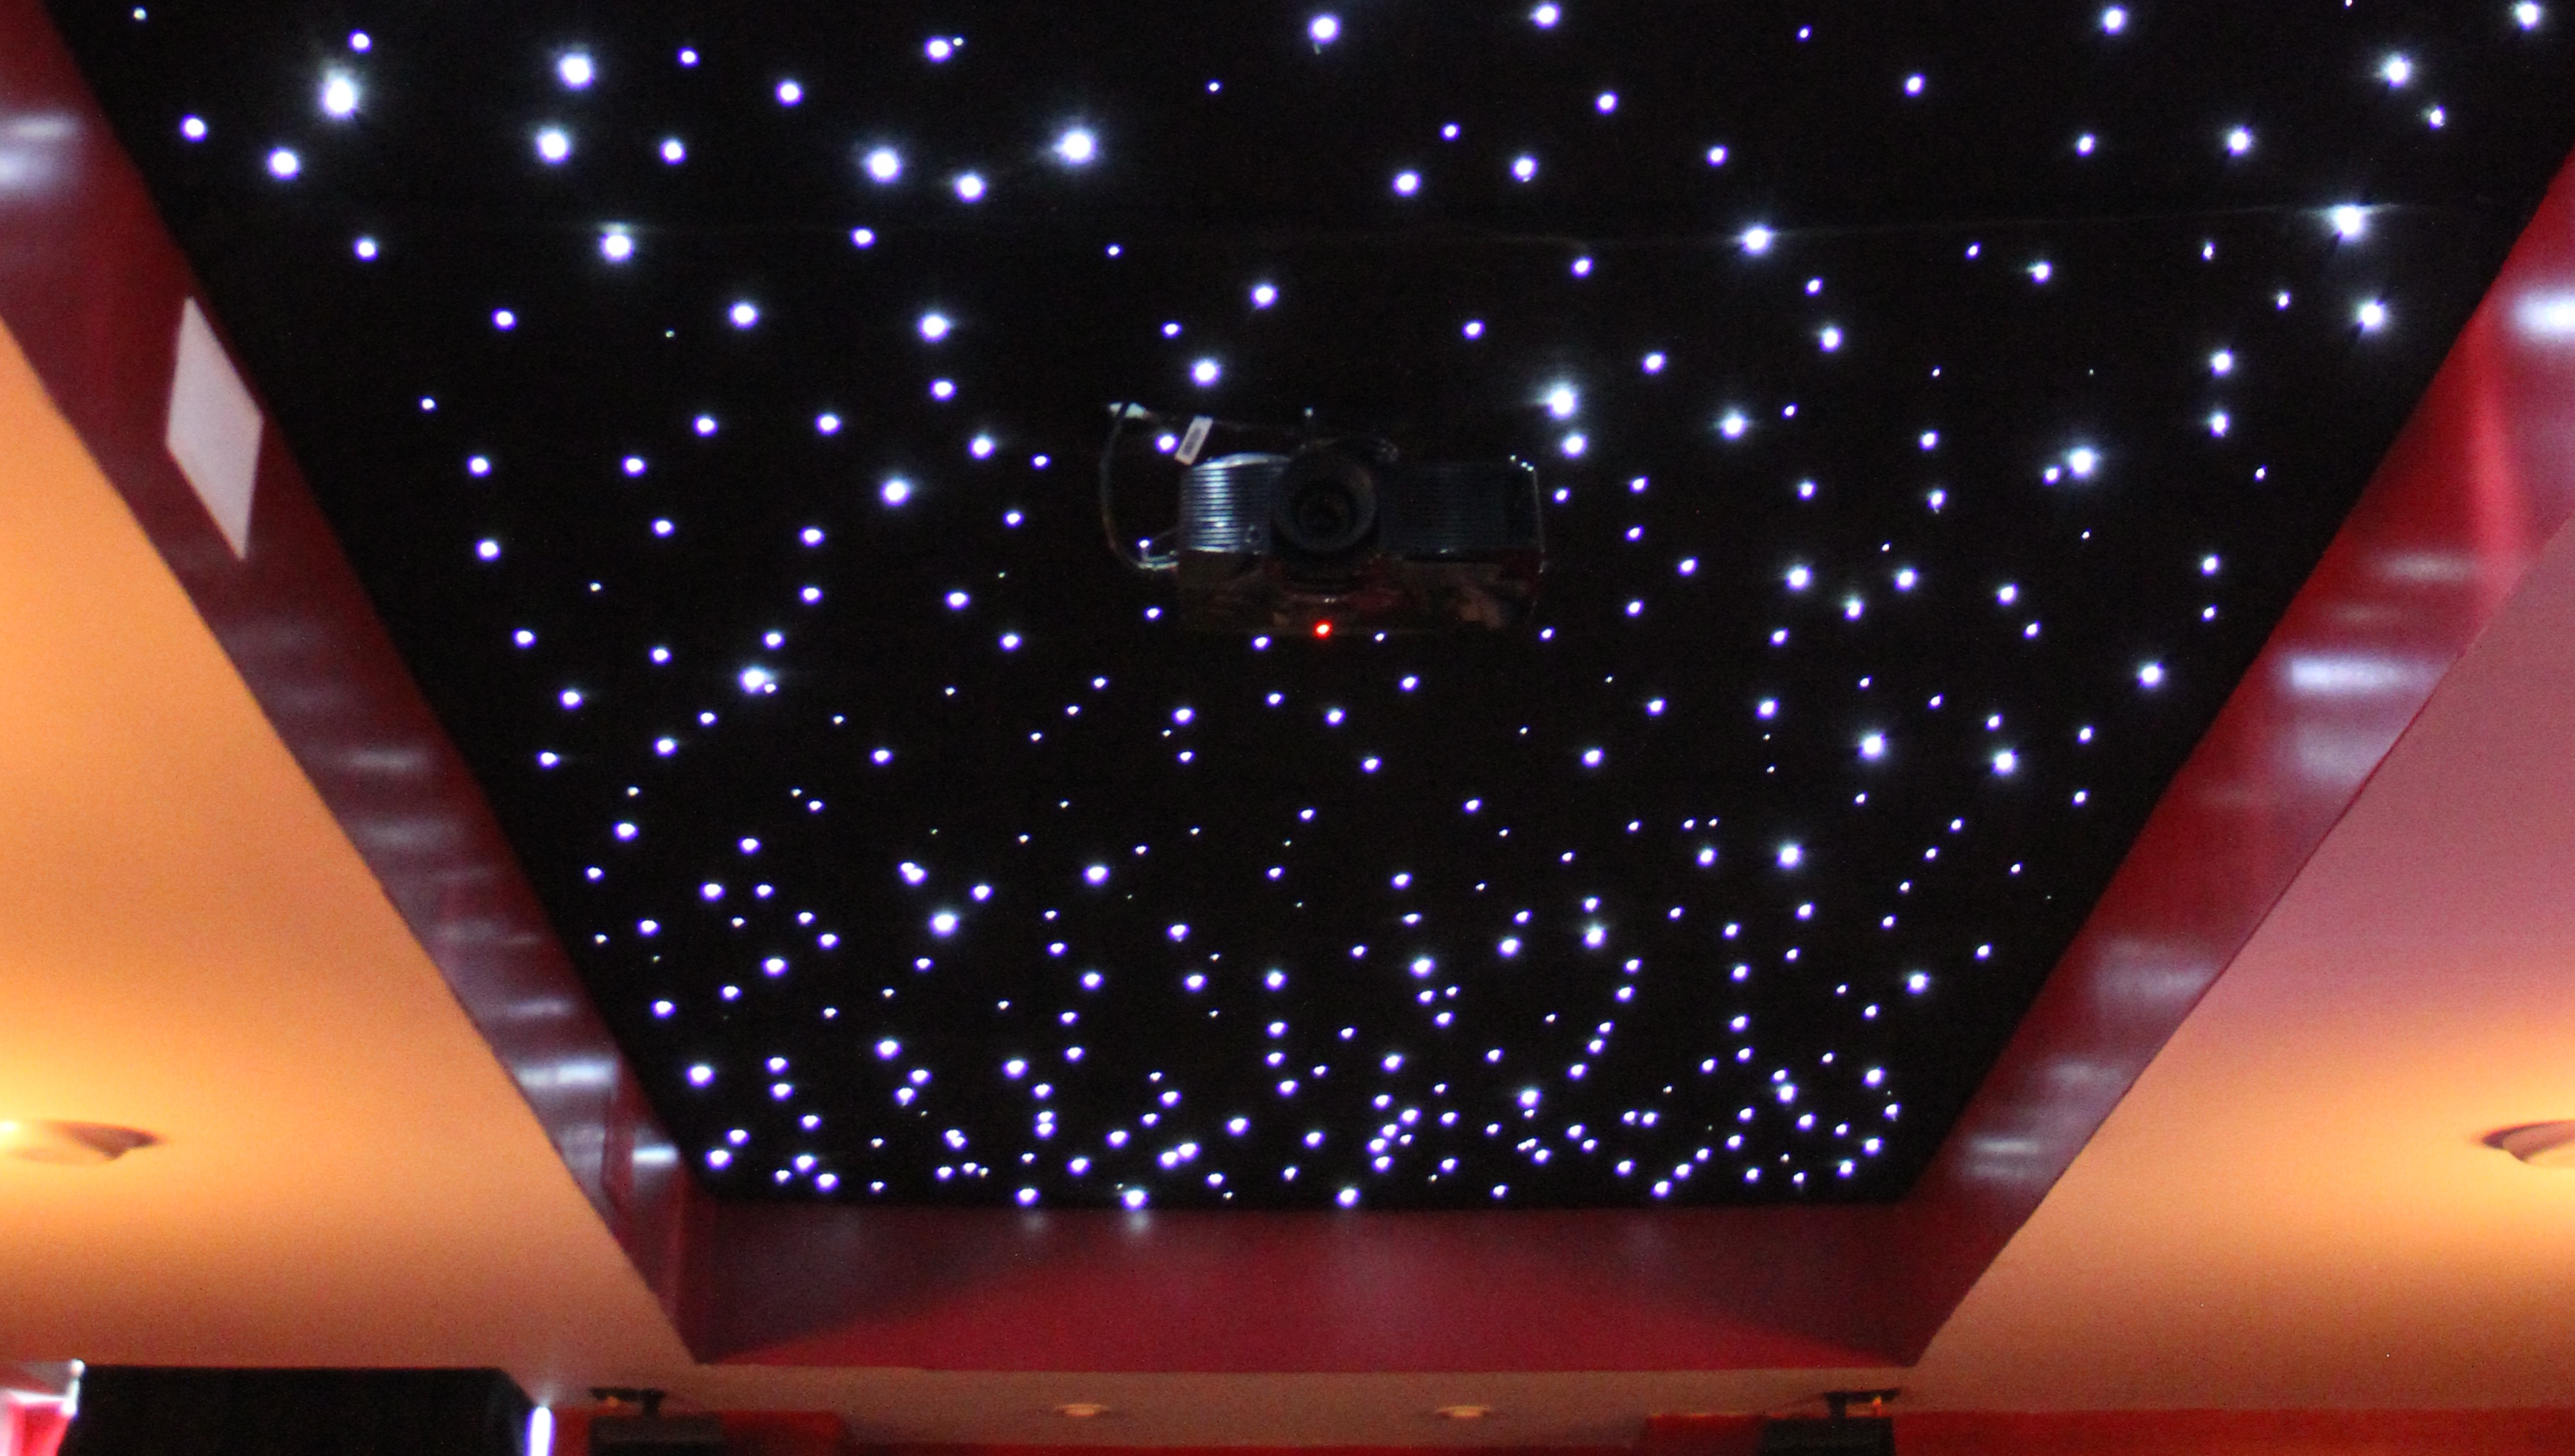 Bedroom ceiling lights stars - Installing A Fiber Optic Starfield Ceiling